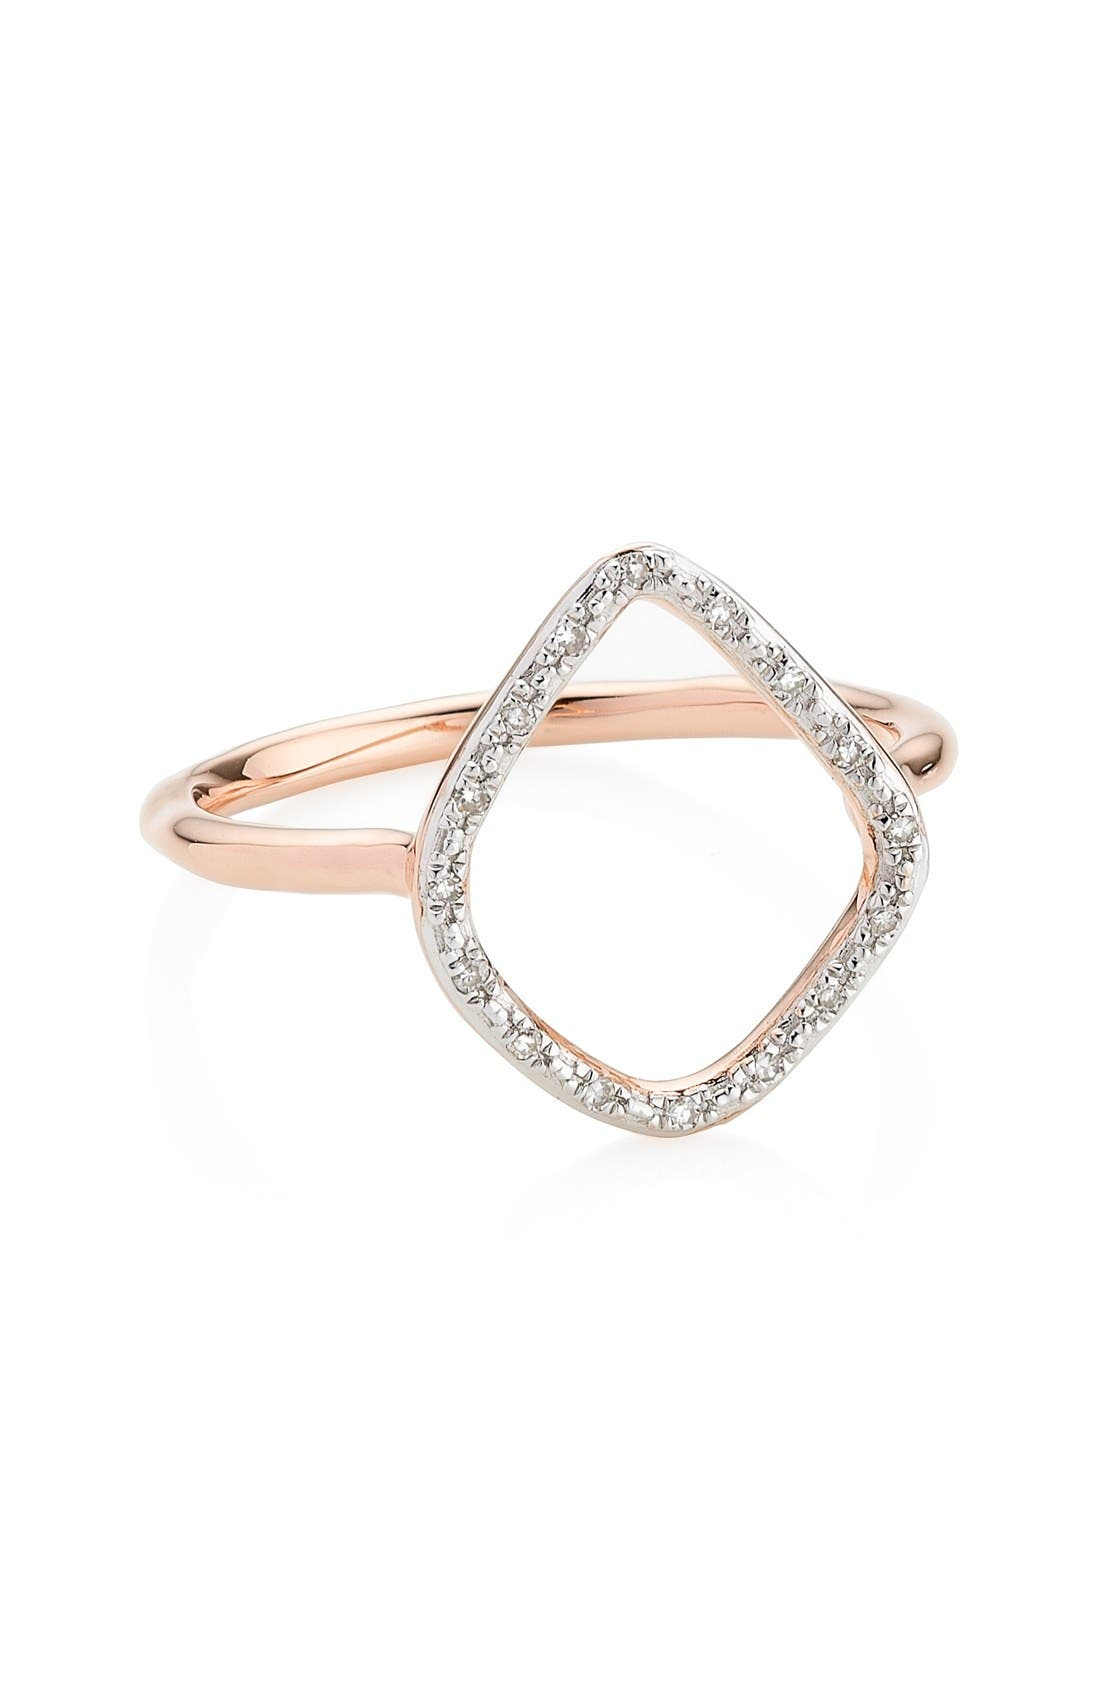 Monica Vinader 'Riva' Diamond Hoop Ring